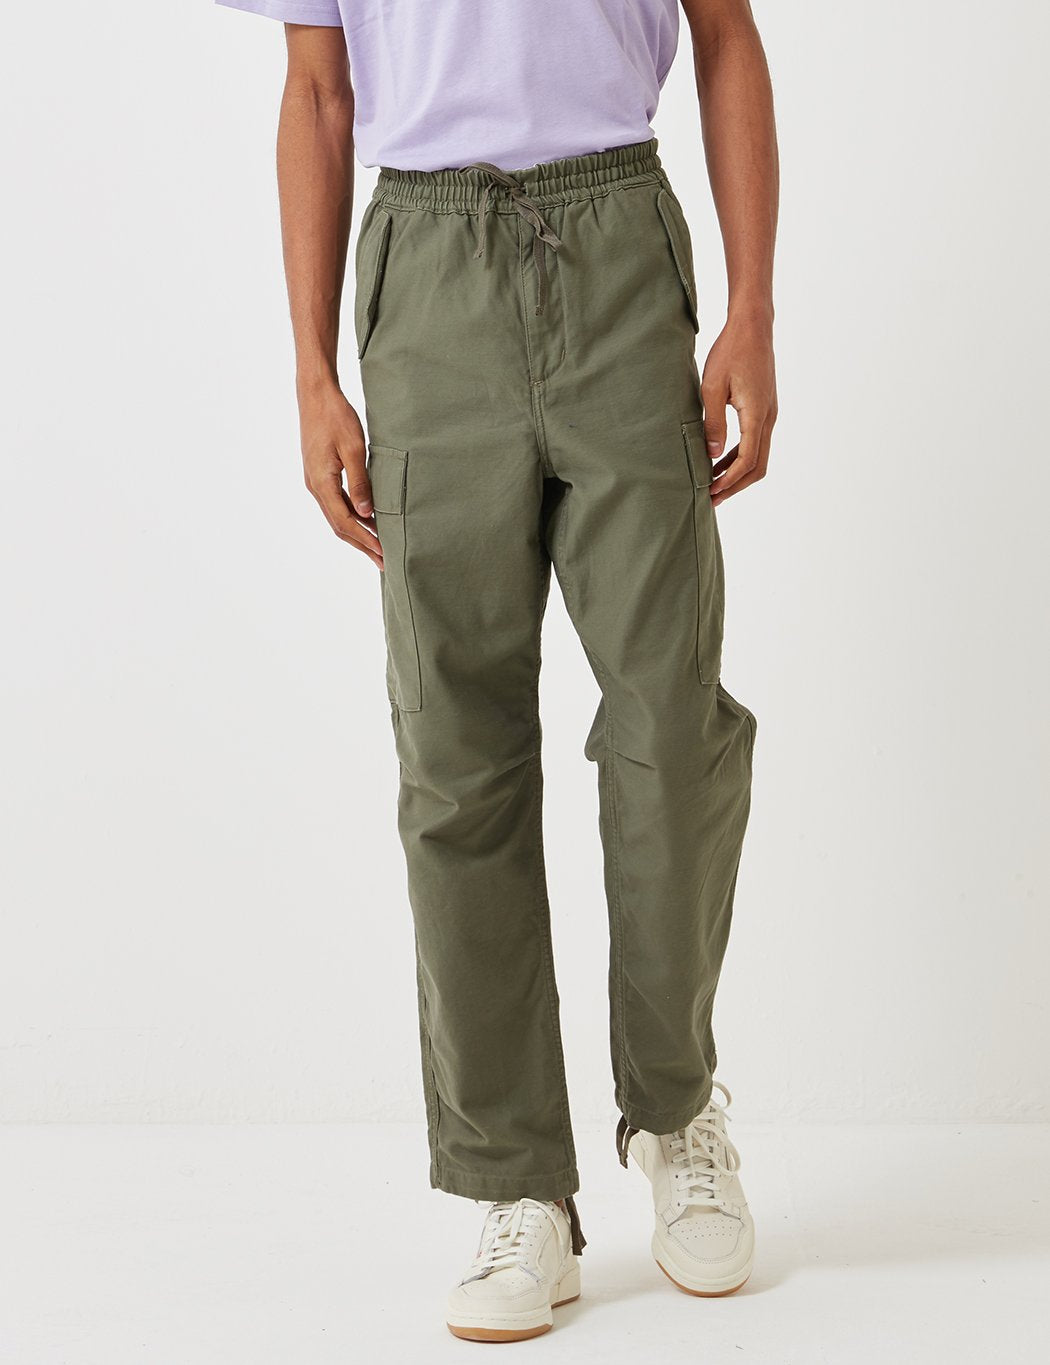 Carhartt-WIP Camper Pant (Stonewashed) - Rover Grün